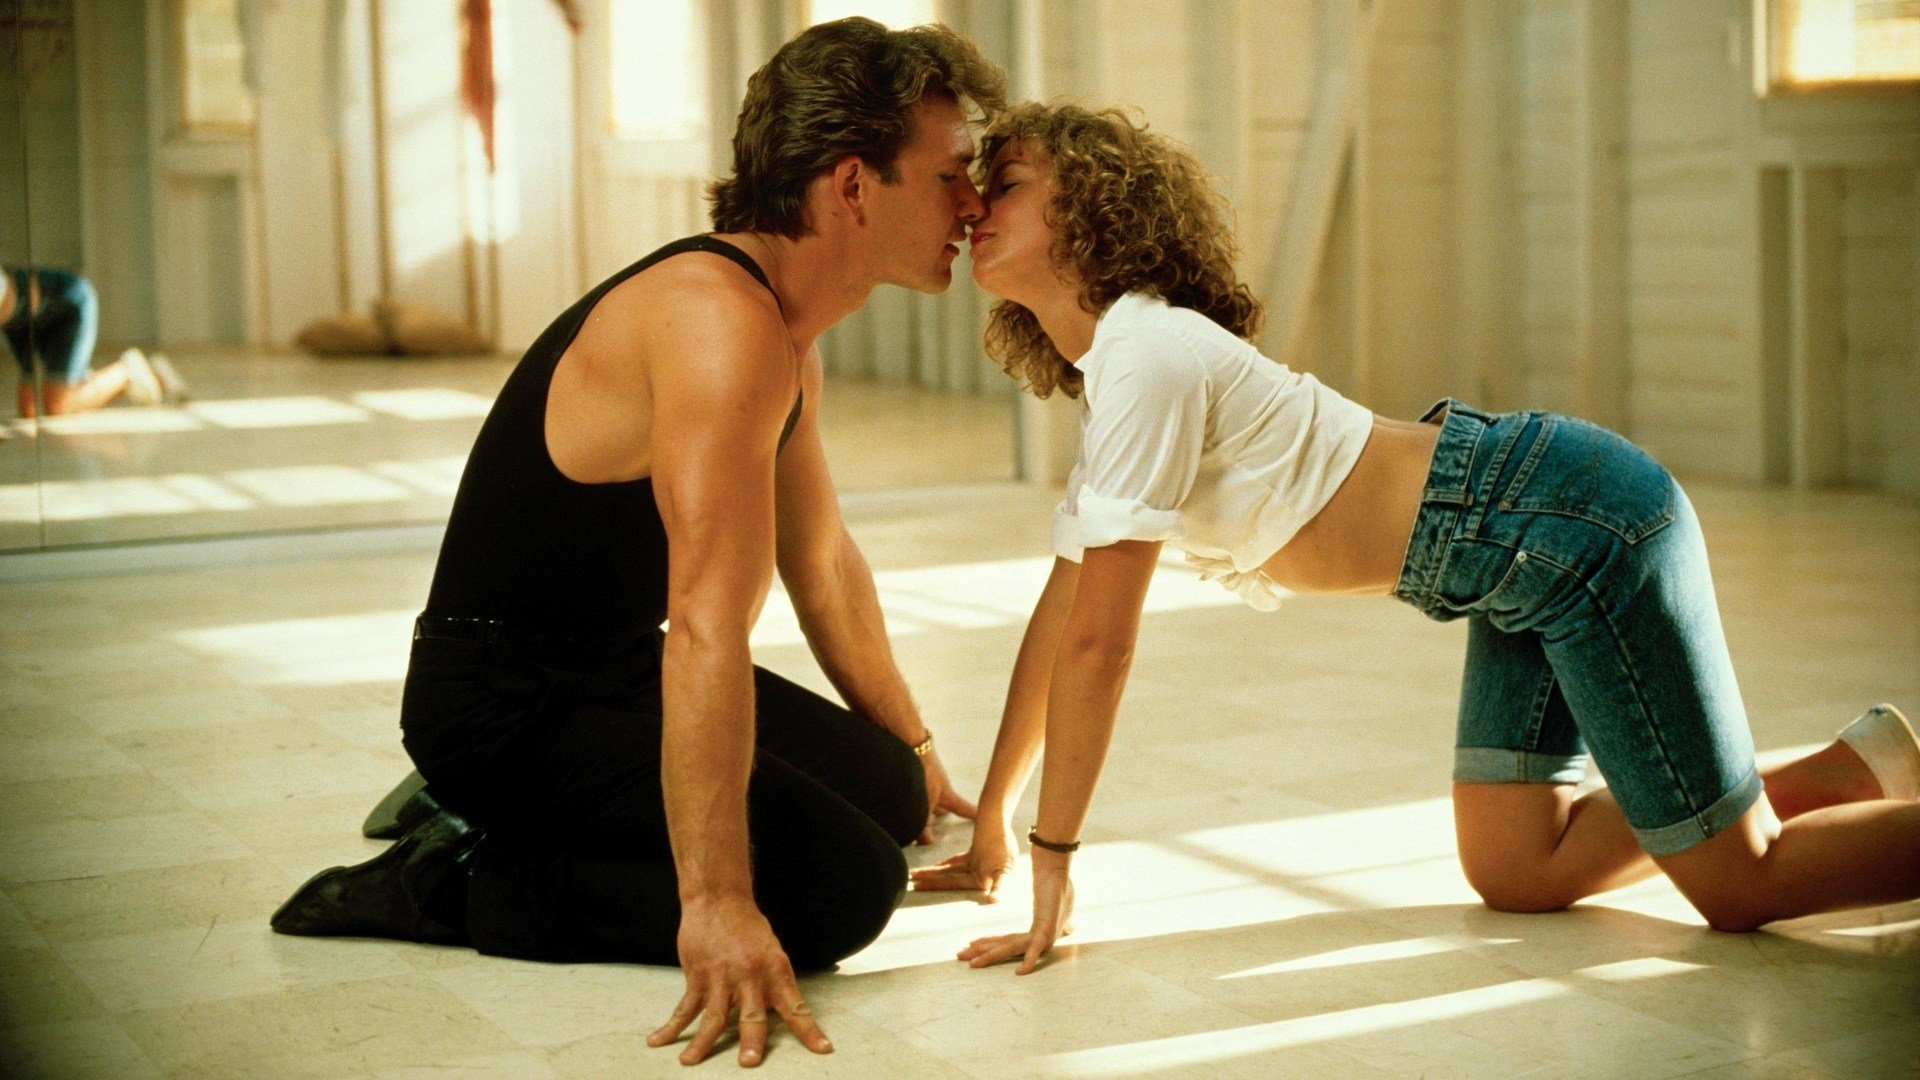 Dirty Dancing (1987), la recensione: la commedia romantica con Jennifer Grey e Patrick Swayze è un cult